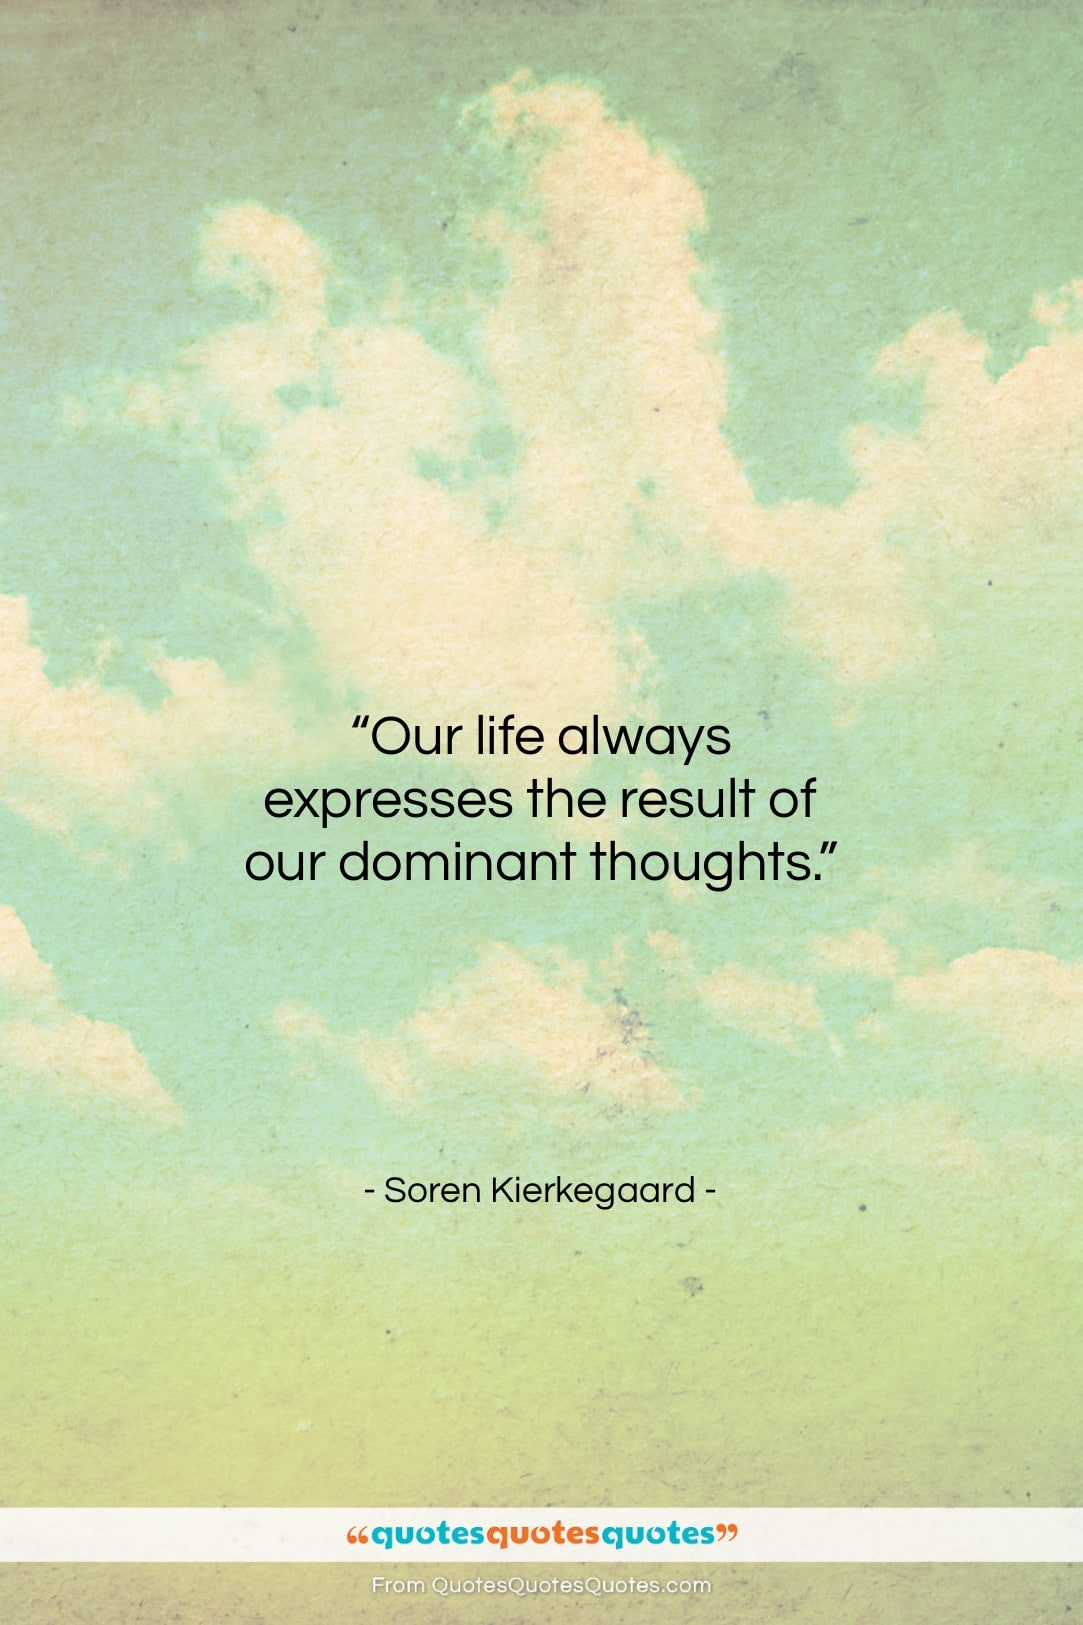 """Soren Kierkegaard quote: """"Our life always expresses the result of…""""- at QuotesQuotesQuotes.com"""